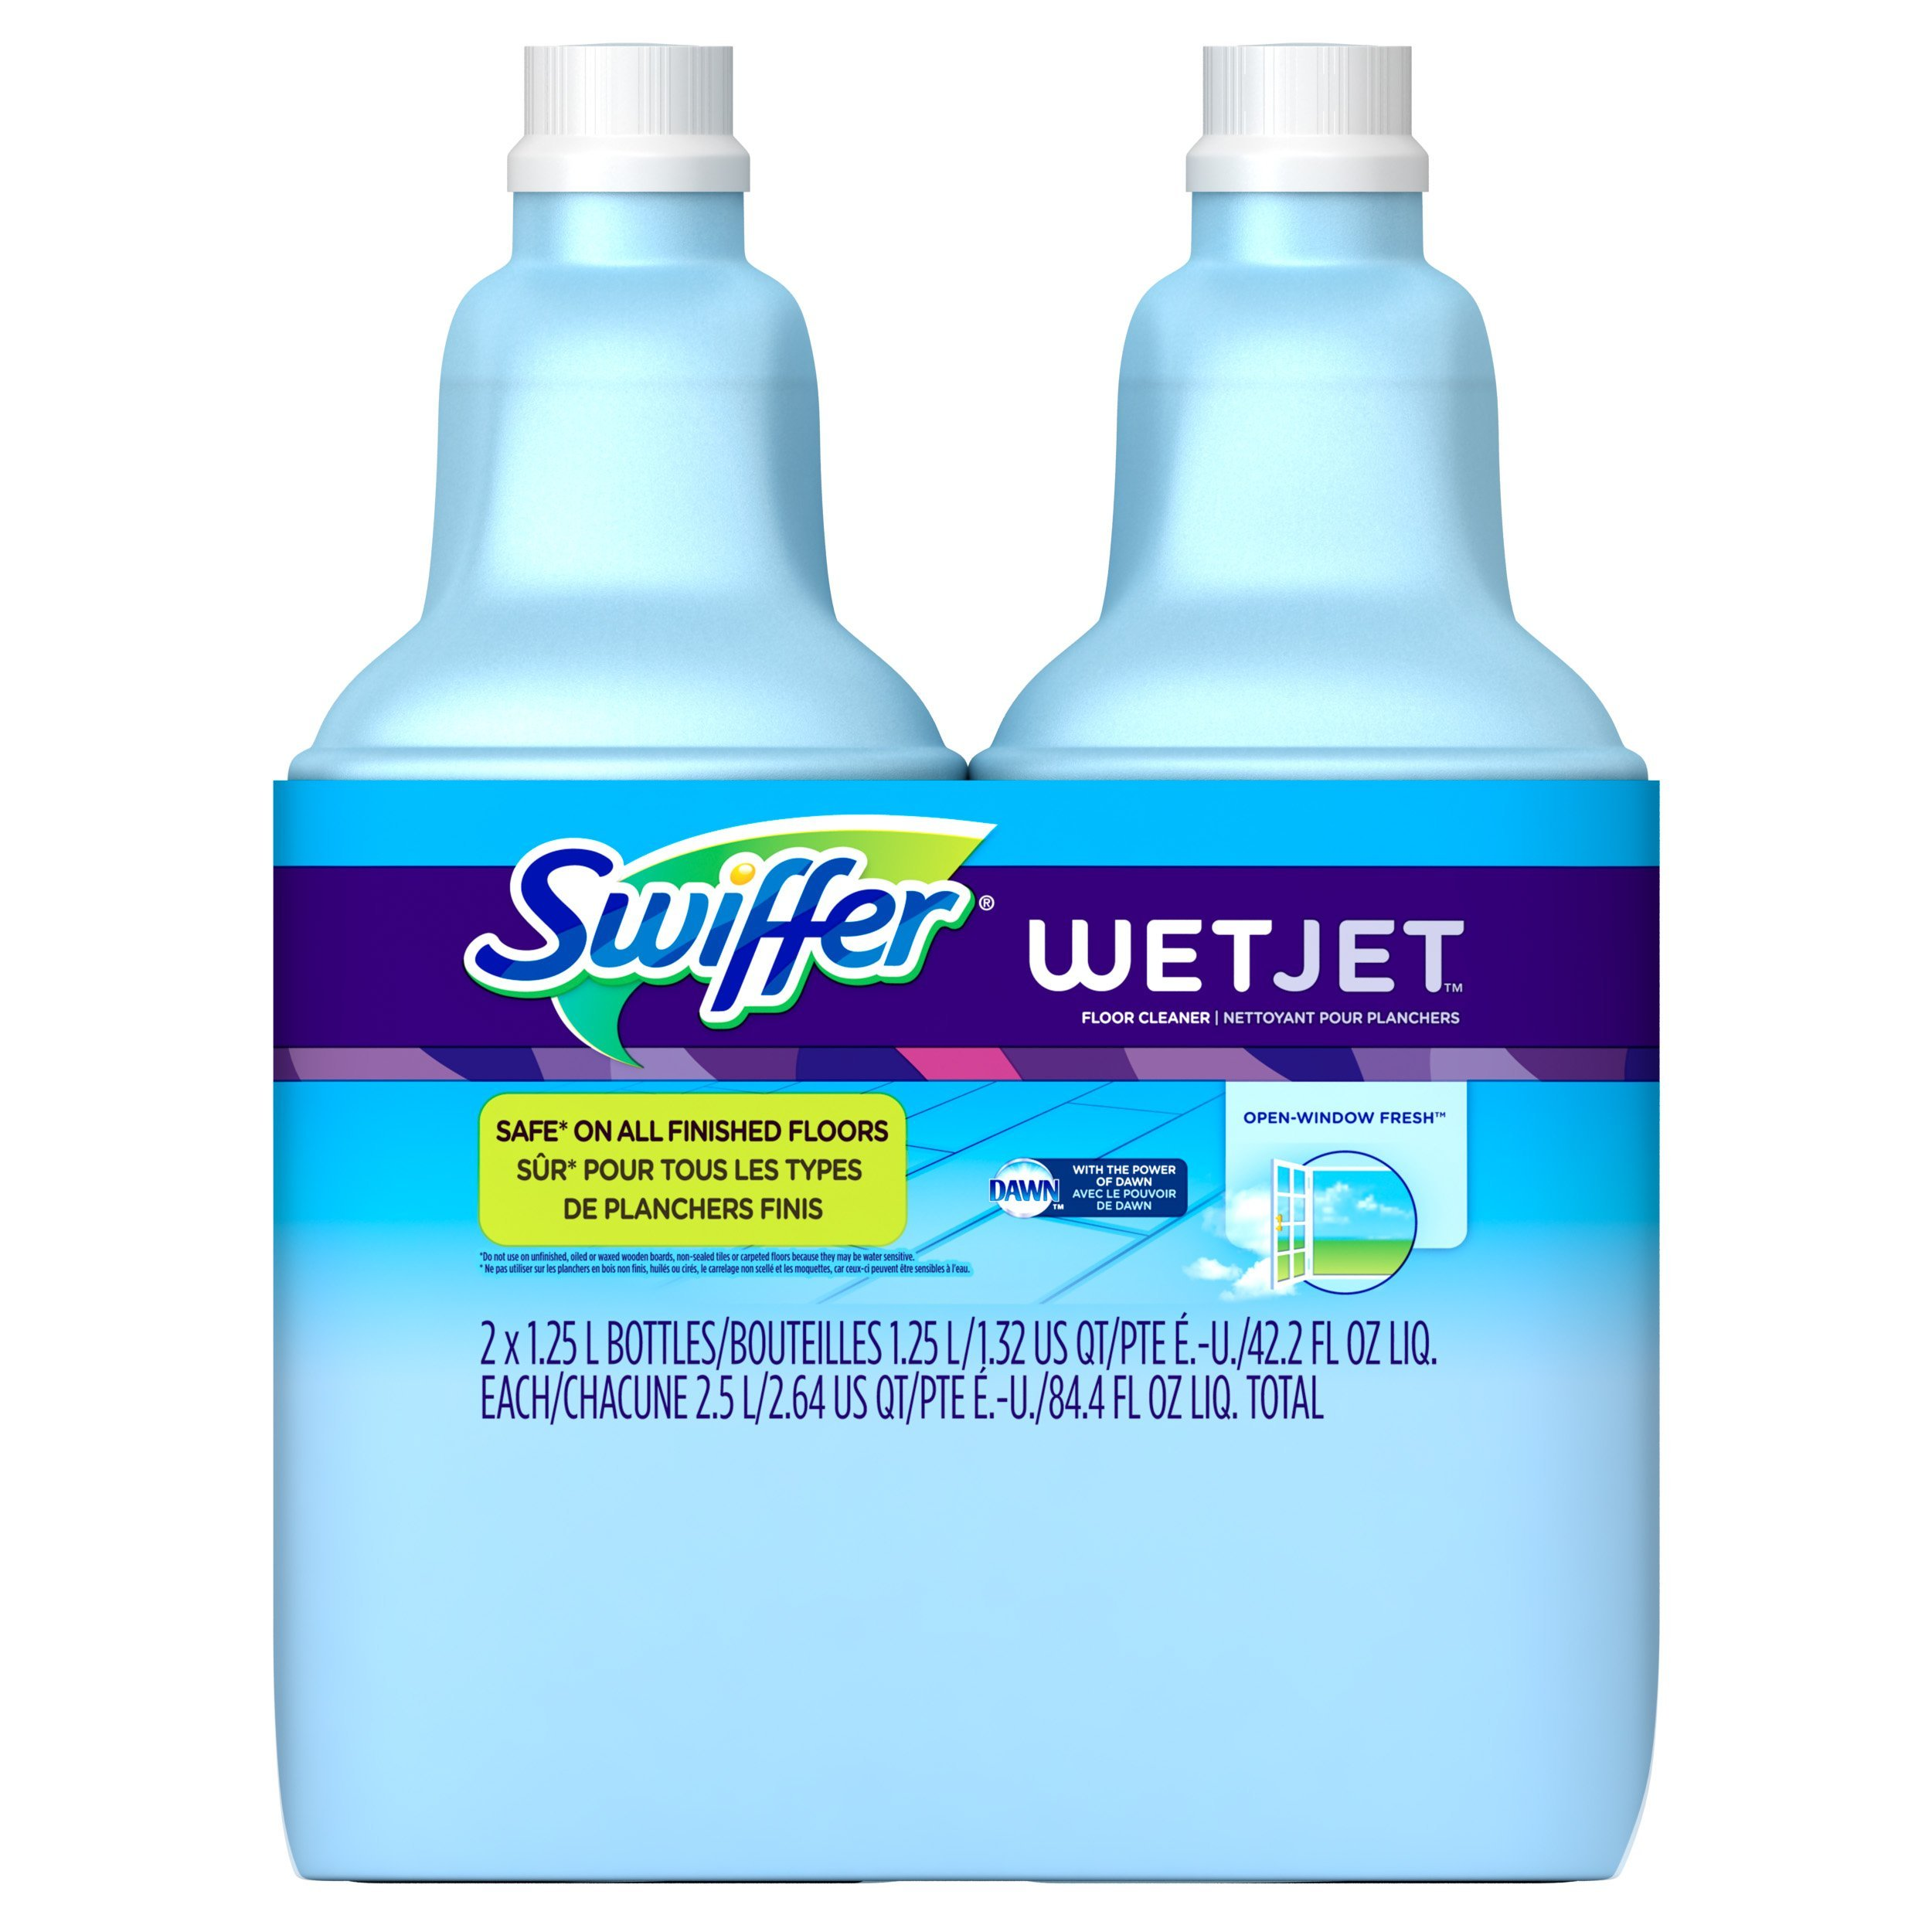 Amazon.com: Swiffer WetJet Spray, Mop Floor Cleaner Starter Kit: Health & Personal Care